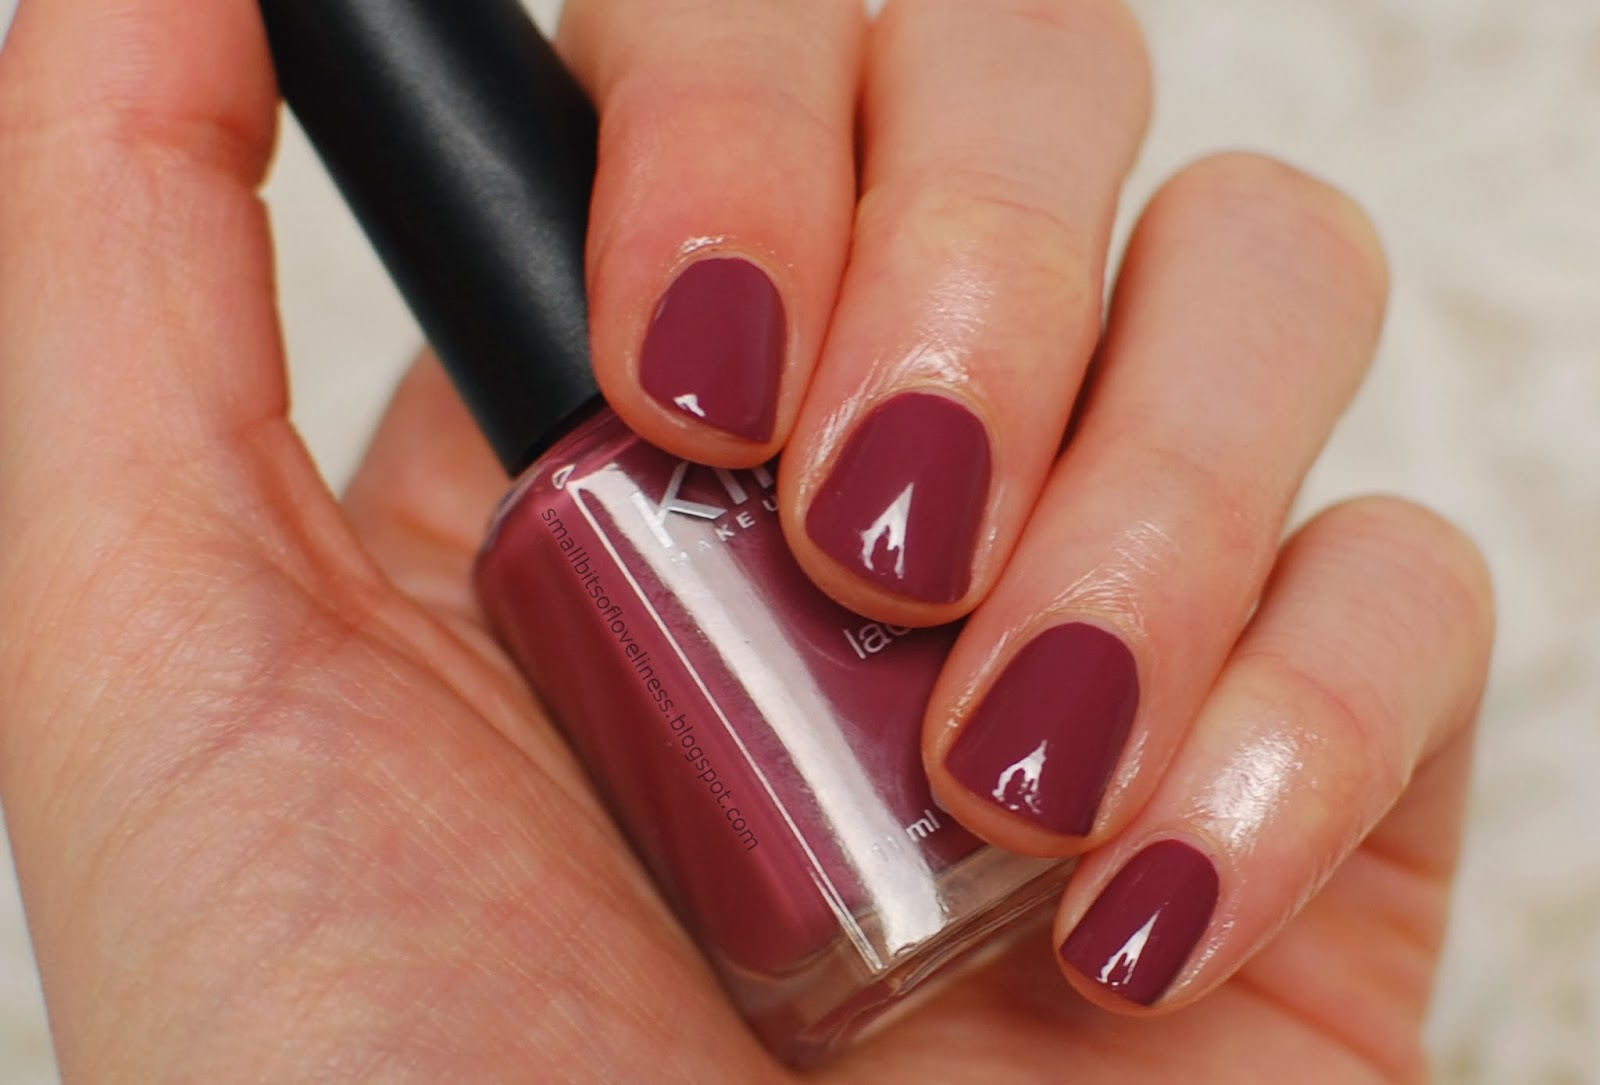 Kiko 317, Dark Antique Pink